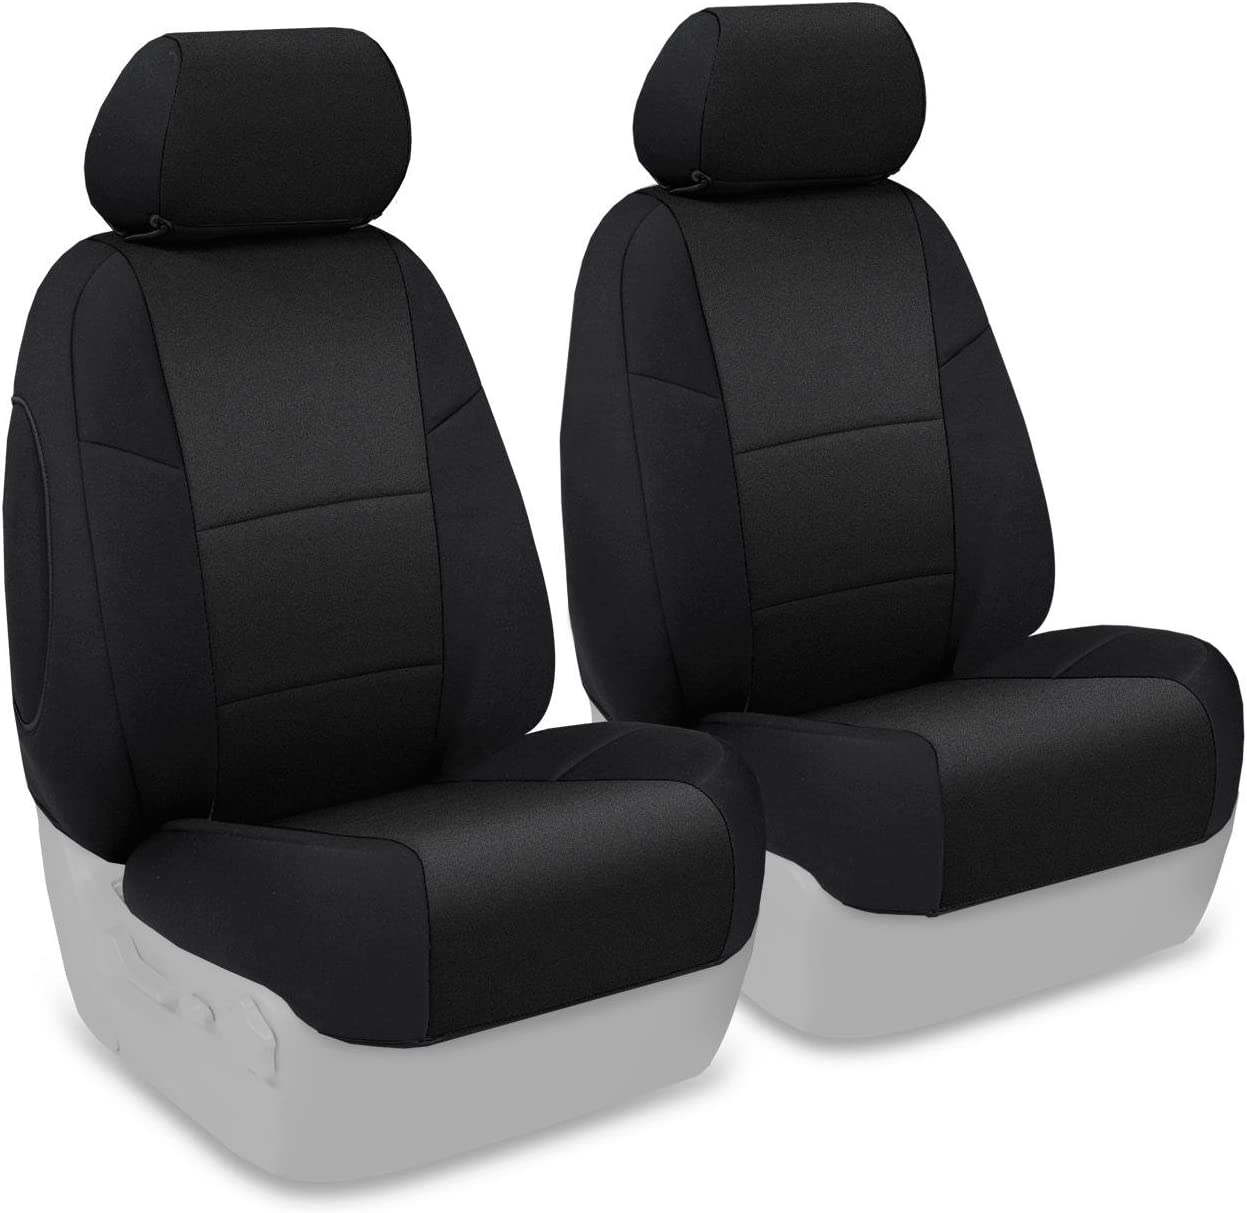 6 Color Options Coverking Custom Seat Covers Neosupreme Front Row